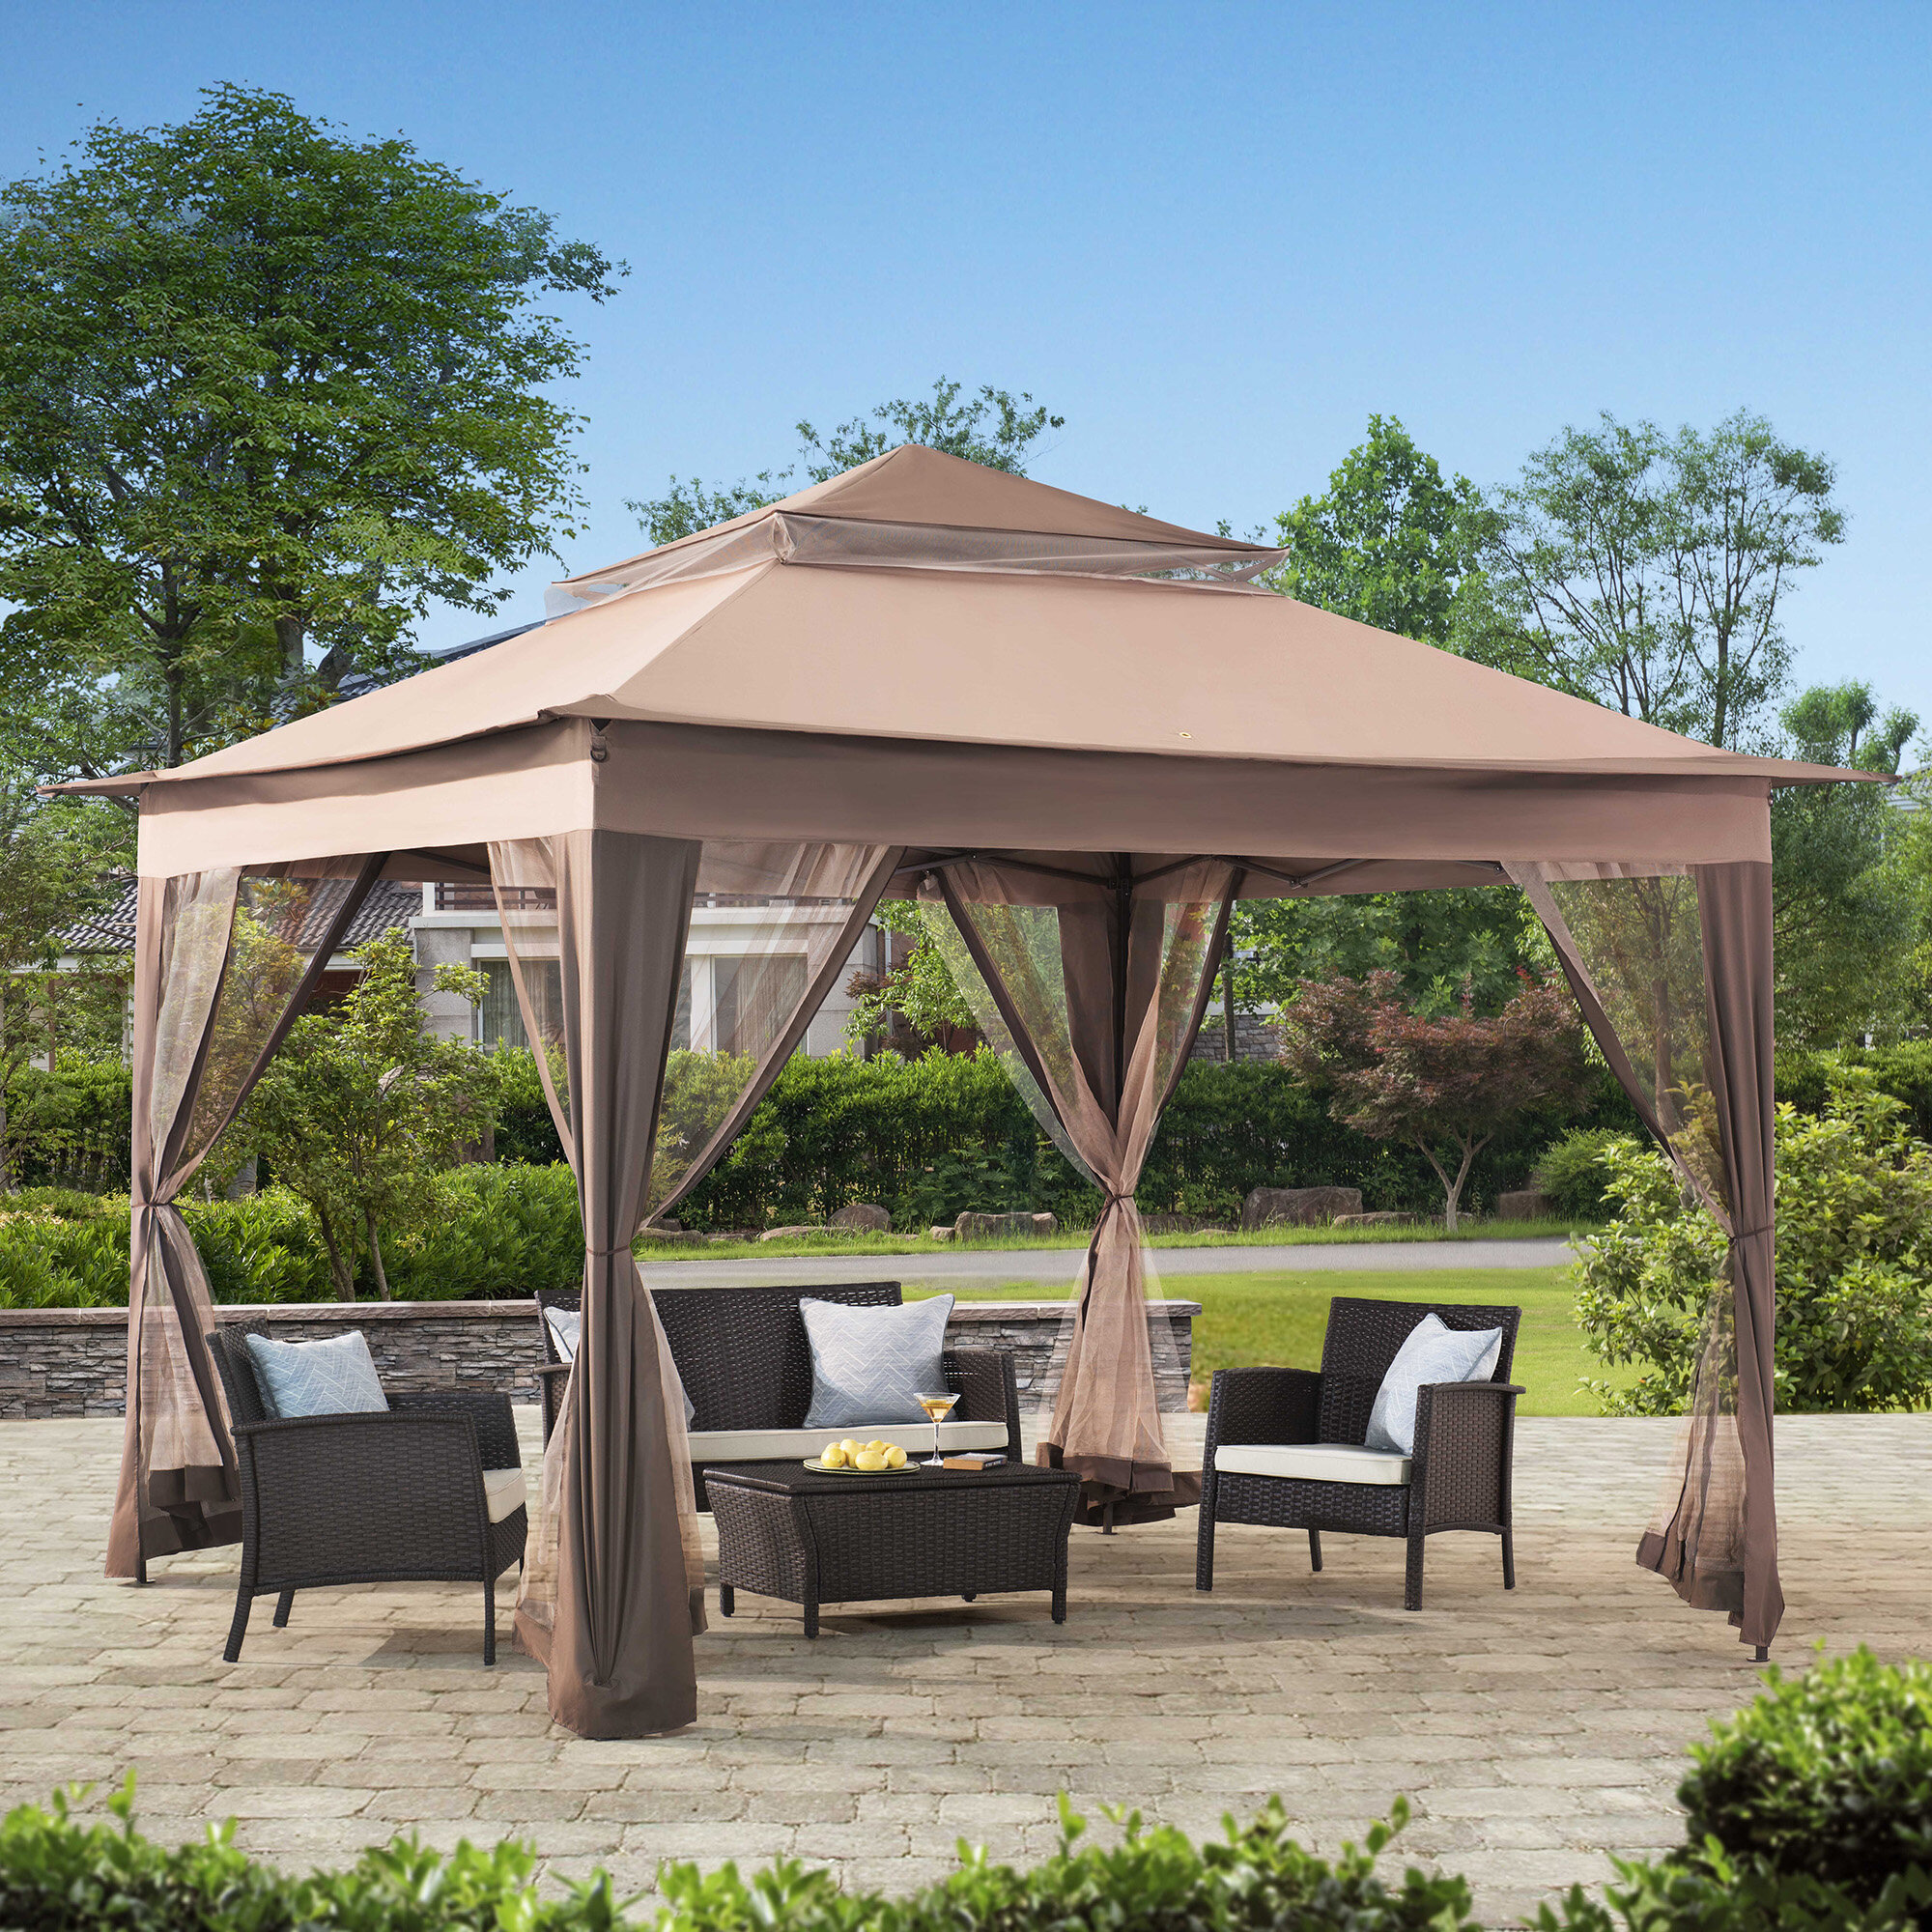 Sunjoy 10 Ft. W x 10 Ft. D Steel Patio Gazebo & Reviews | Wayfair on